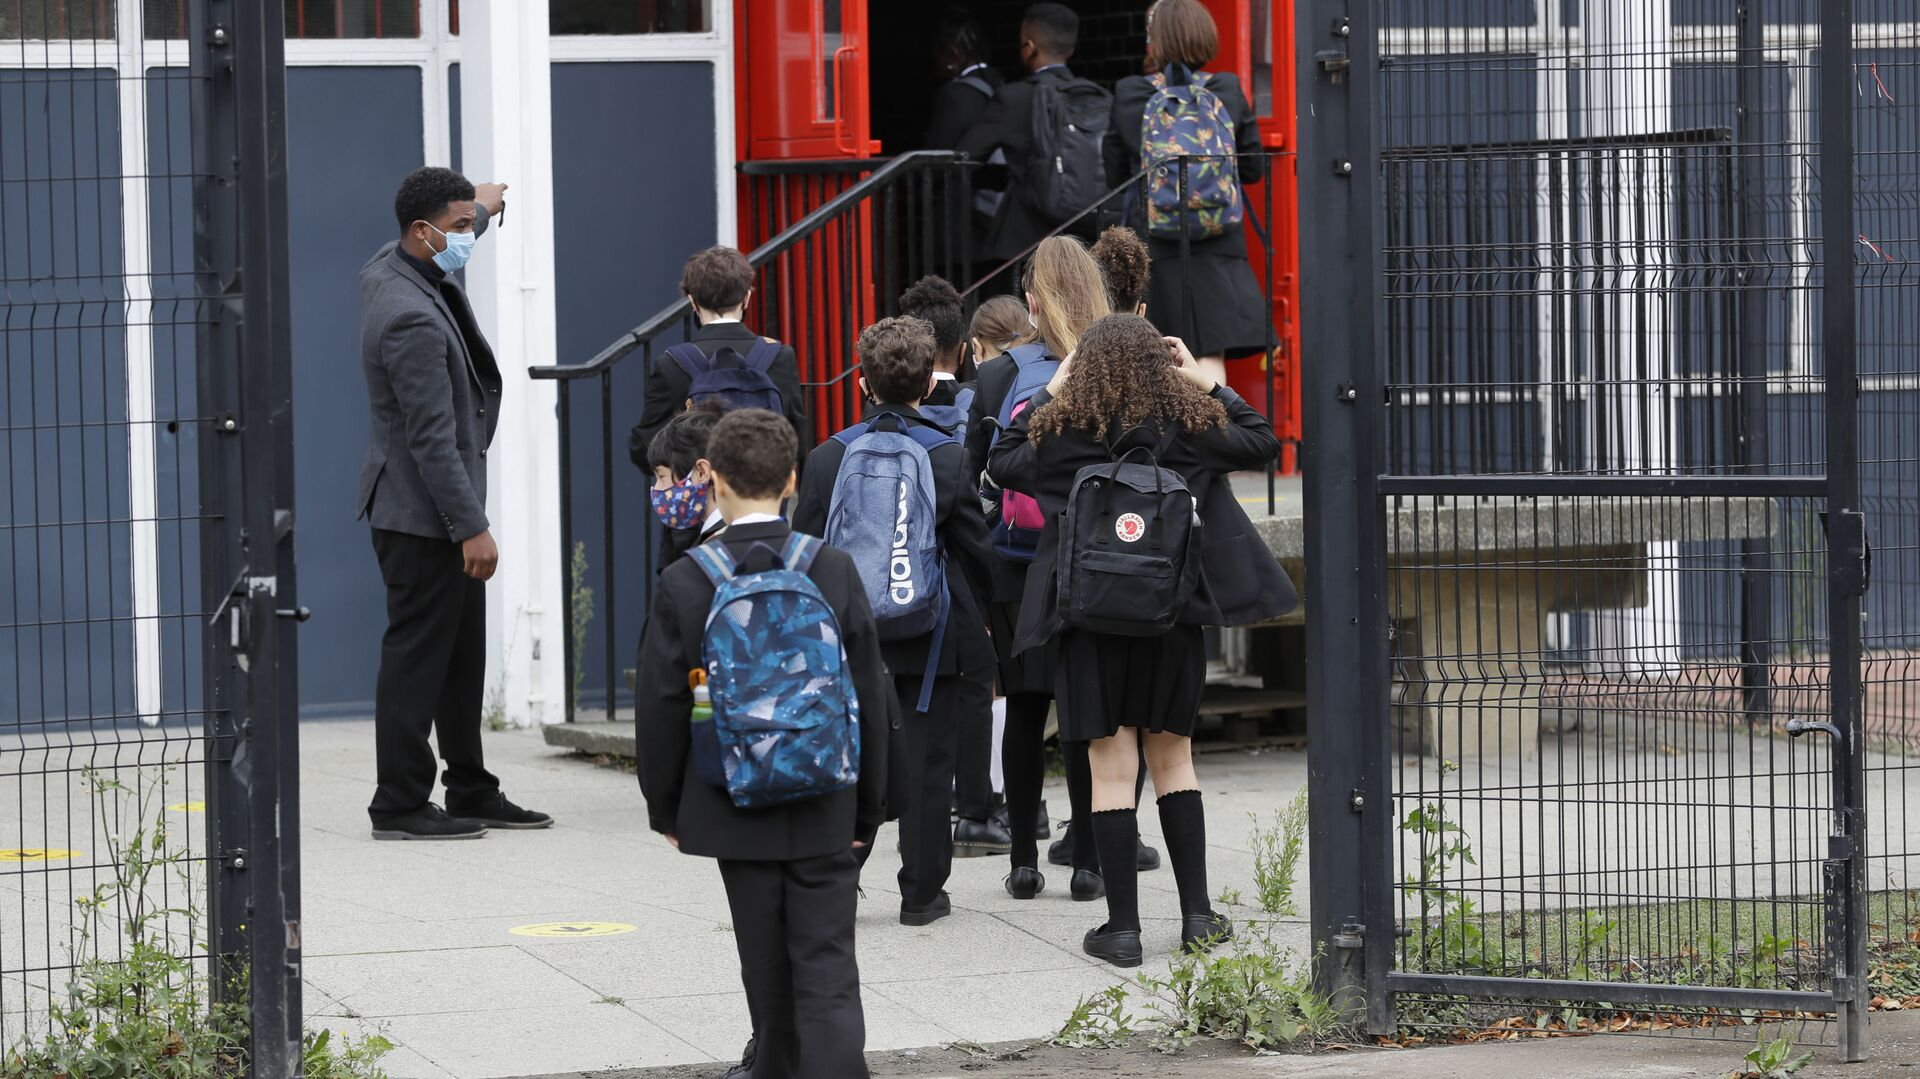 Year seven pupils are directed to socially distance as they arrive for their first day at Kingsdale Foundation School in London, Thursday, 3 September 2020 - Sputnik International, 1920, 25.02.2021